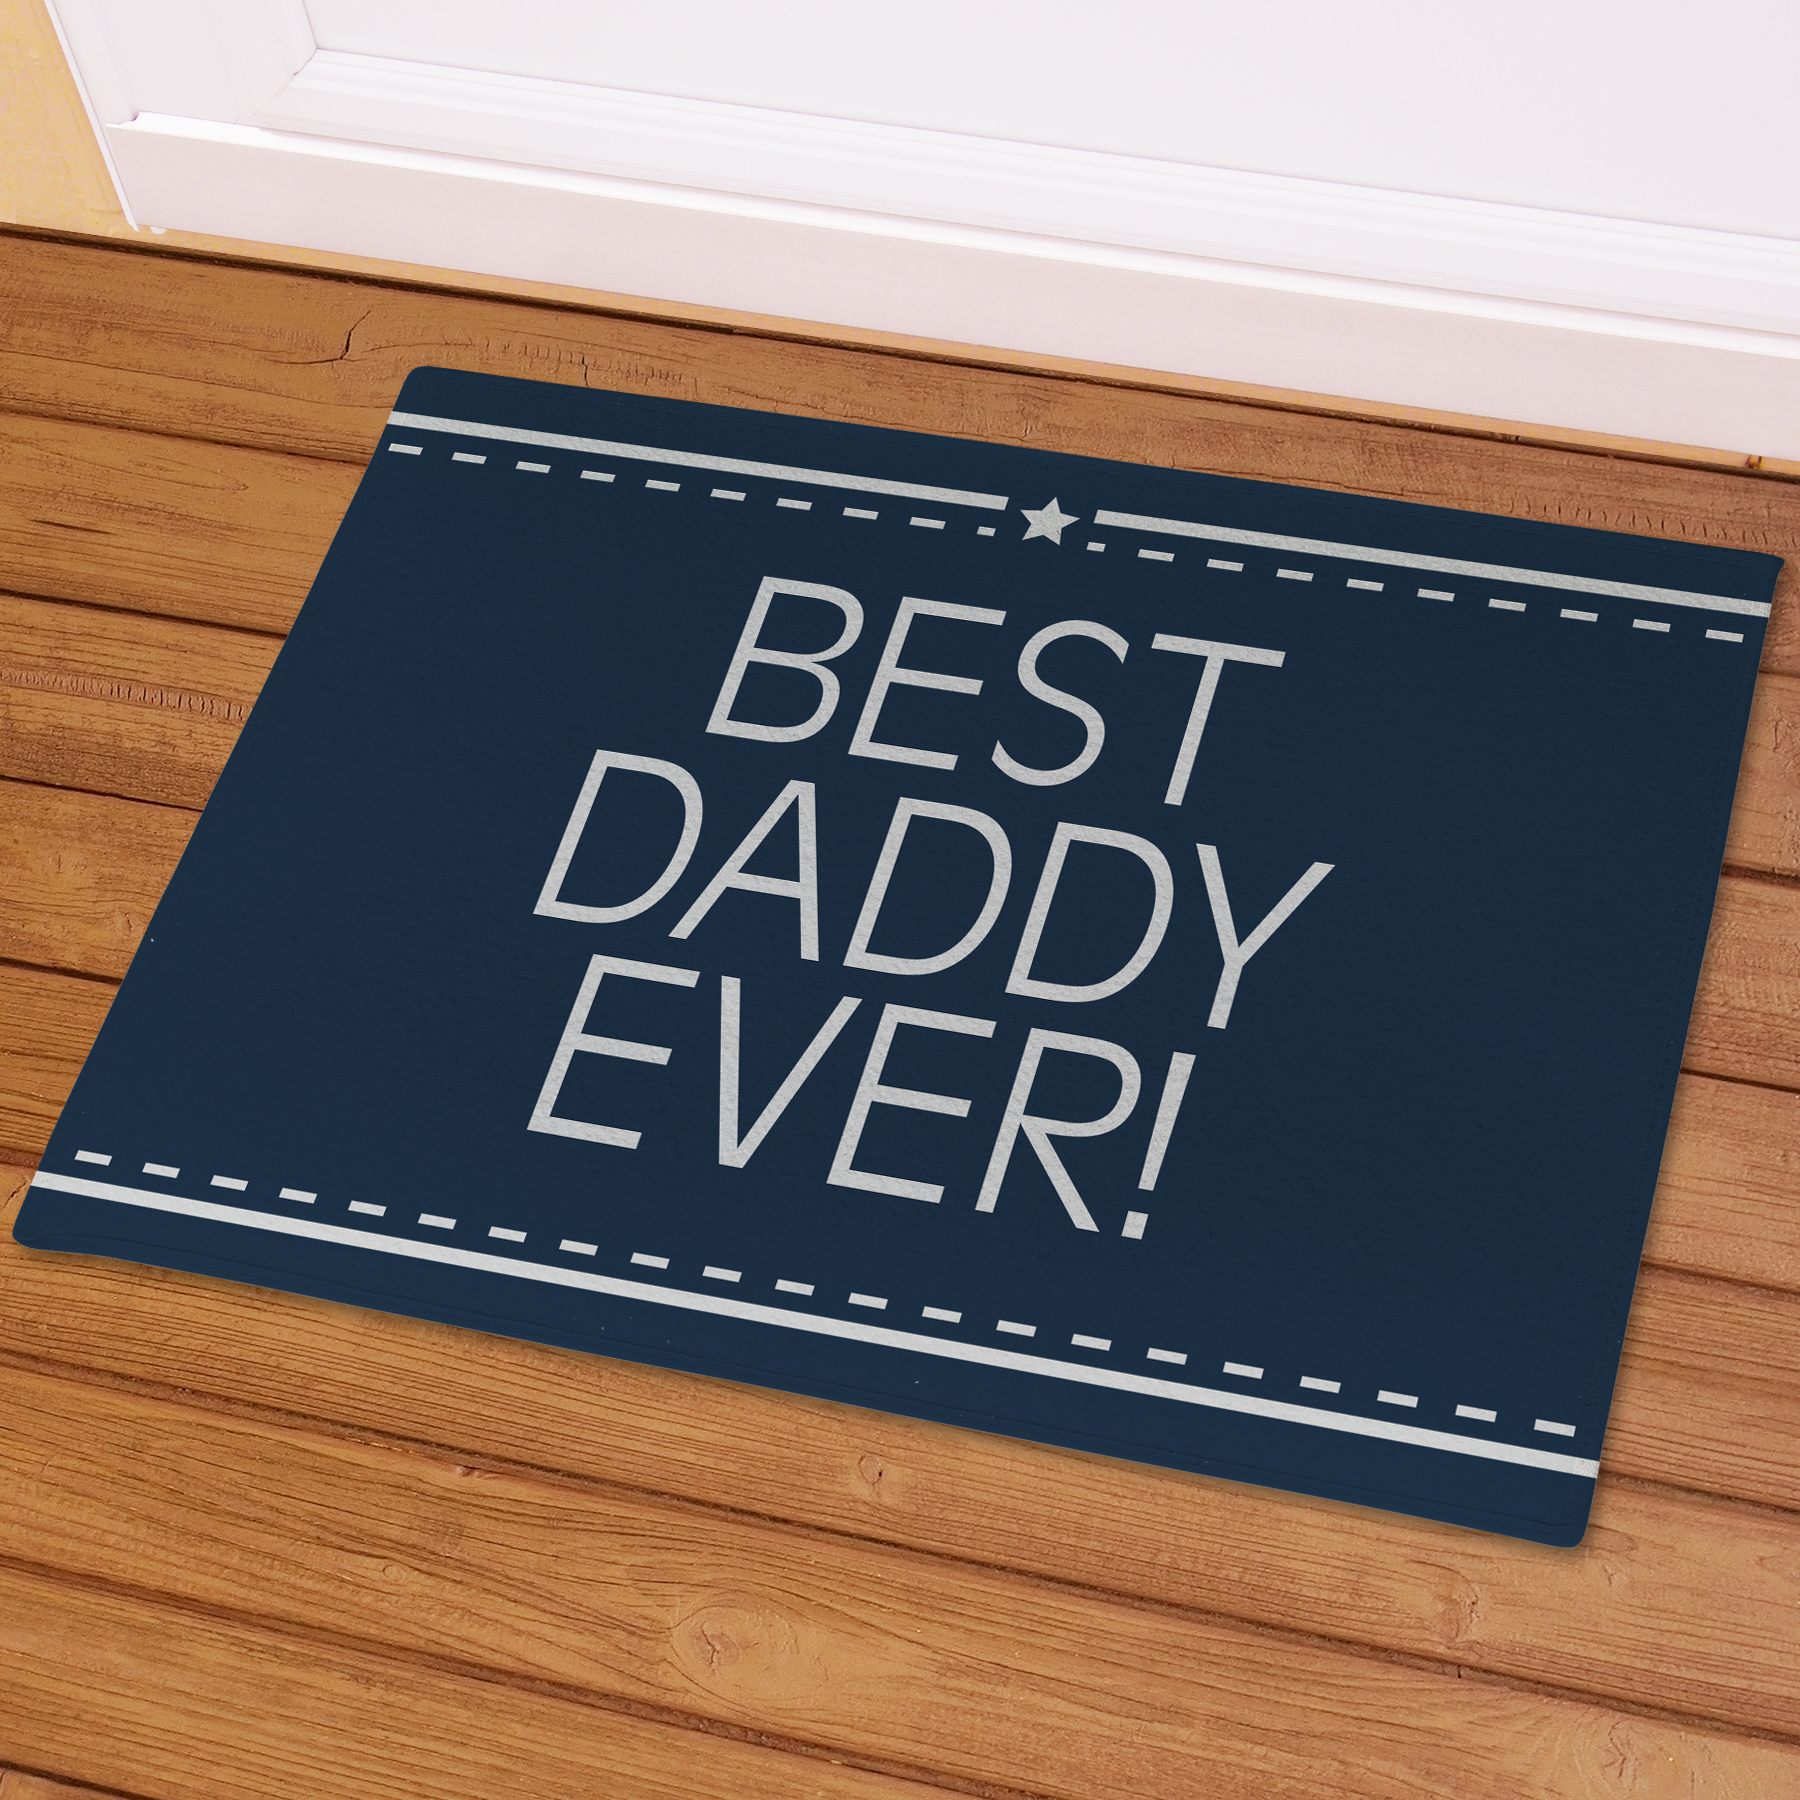 Best Daddy Ever Personalized Doormat | Unique Father's Day Gifts